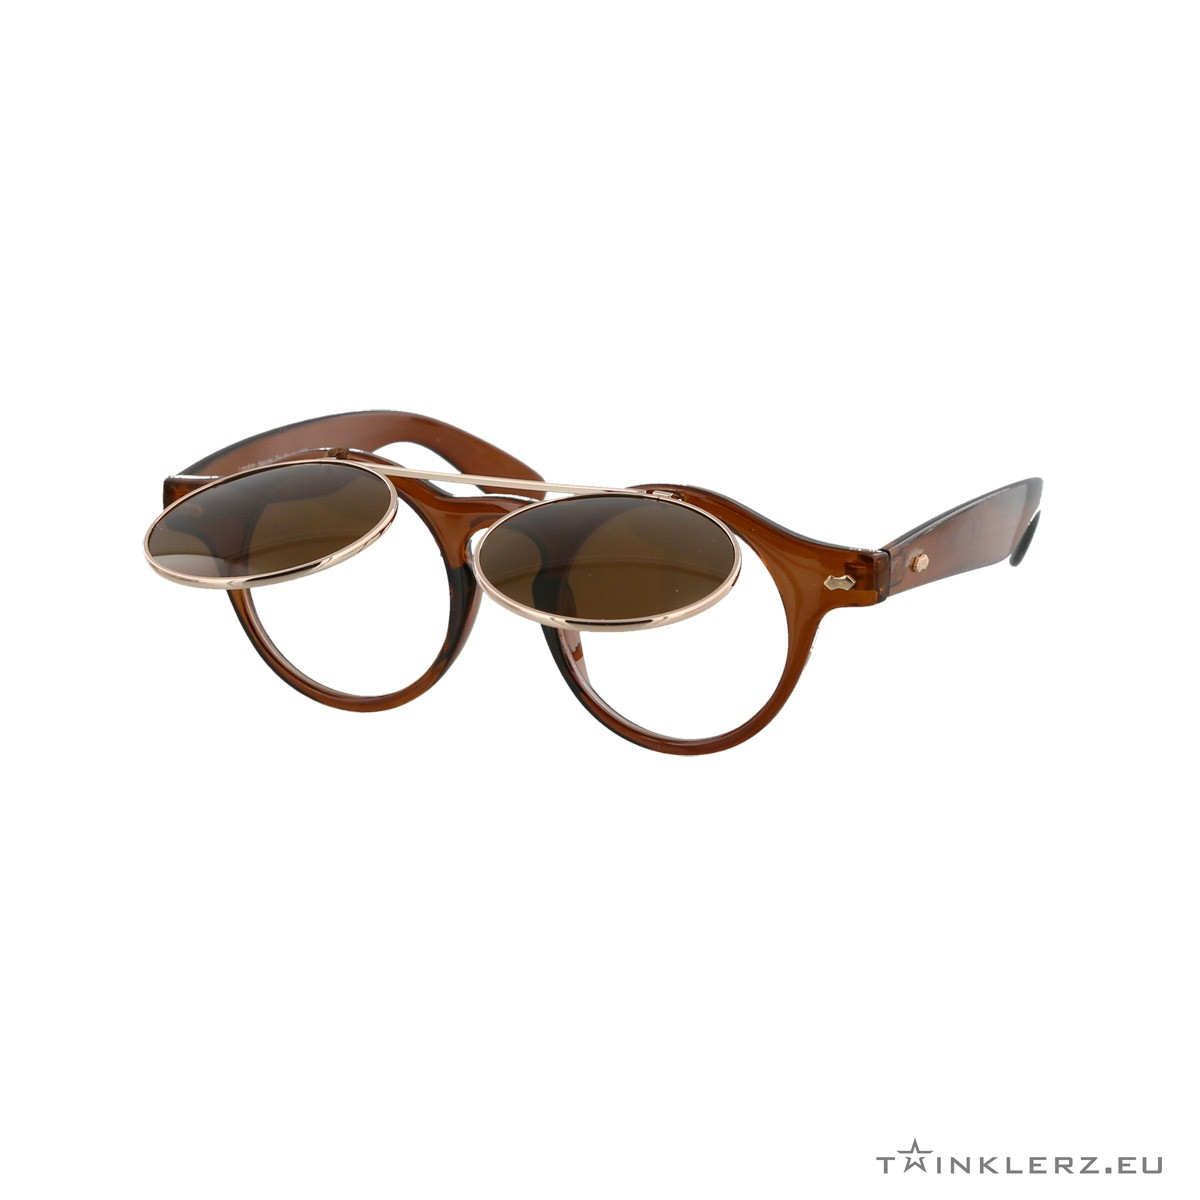 Transparant brown retro sunglasses with flaps